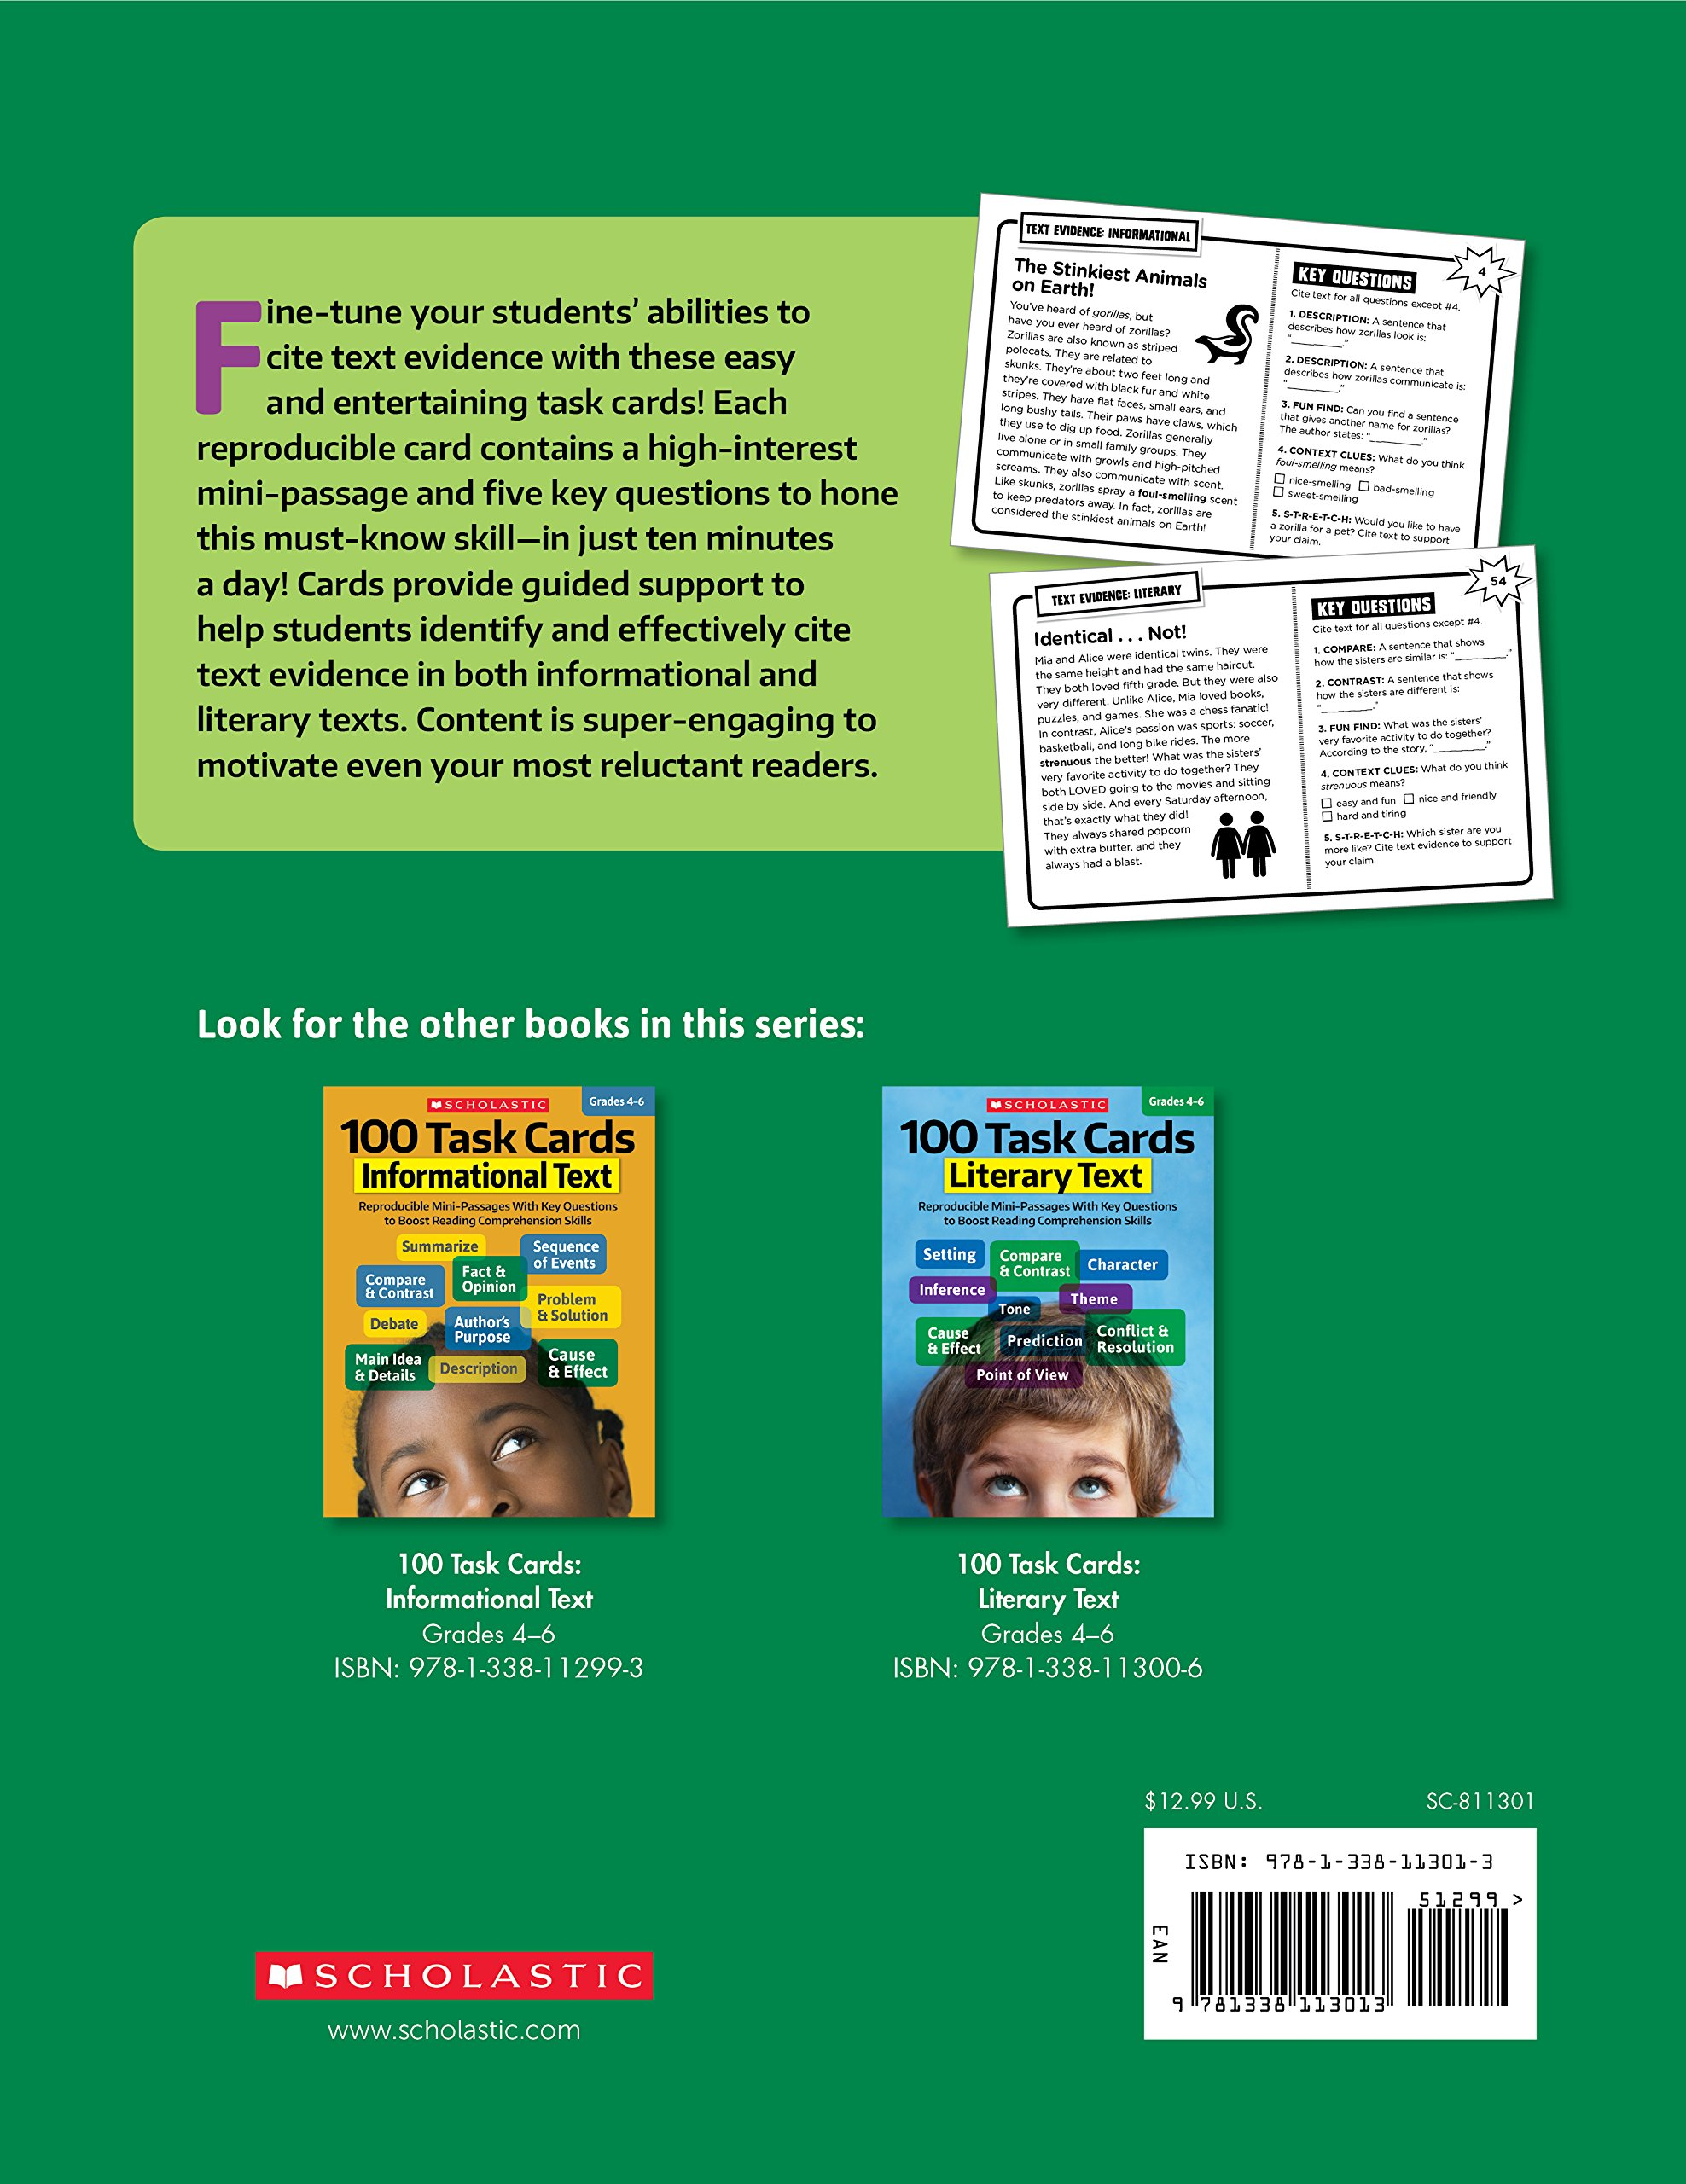 Amazon 100 task cards text evidence reproducible mini amazon 100 task cards text evidence reproducible mini passages with key questions to boost reading comprehension skills 0078073113019 scholastic fandeluxe Choice Image